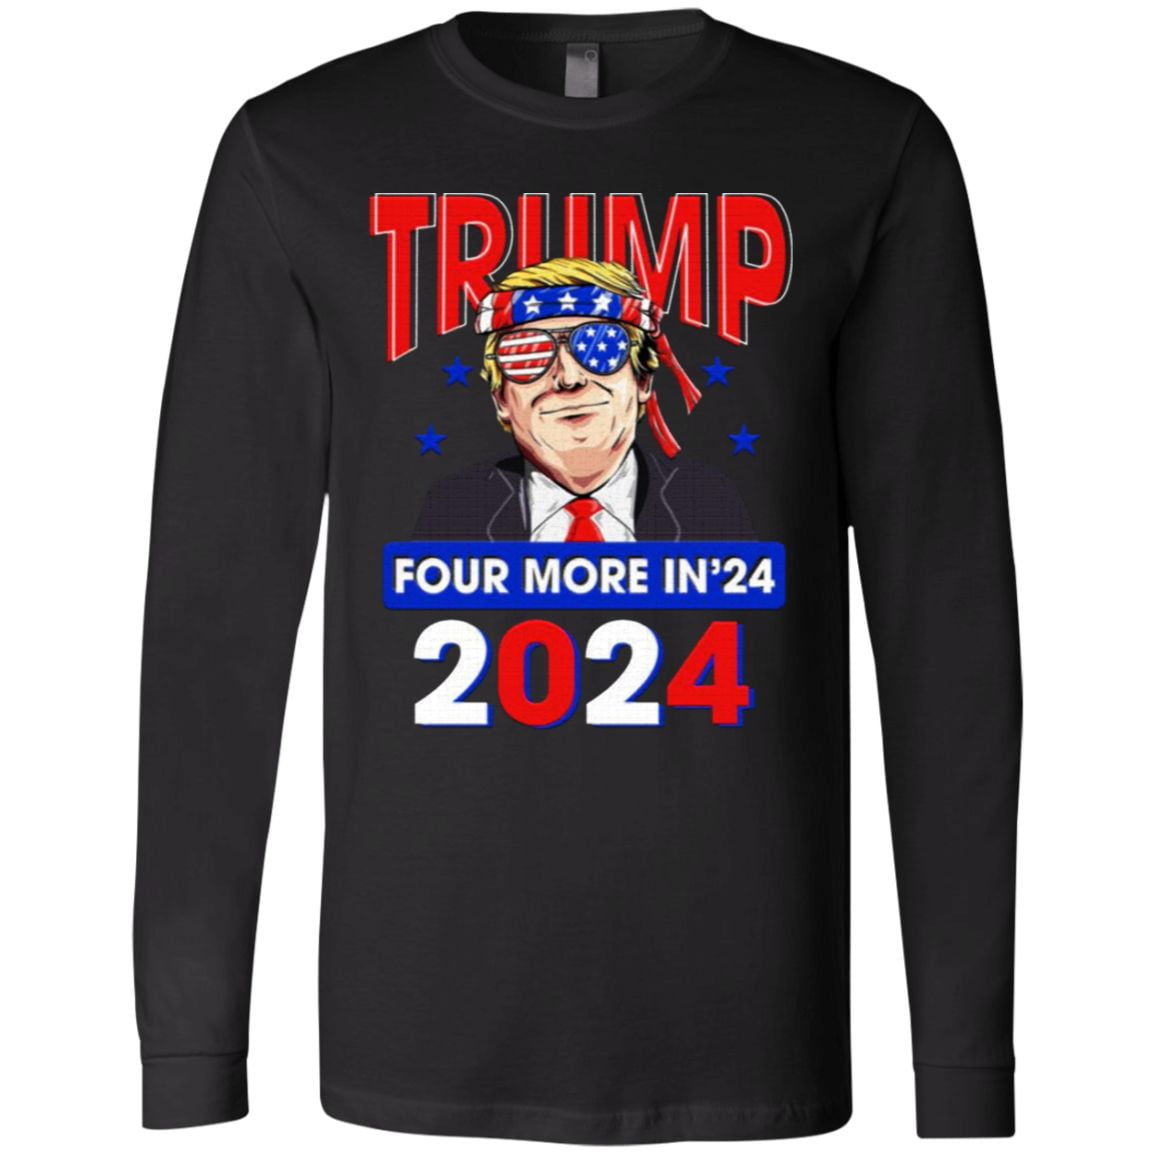 Trump Four More Years in 2024 Pro Trump T-shirt